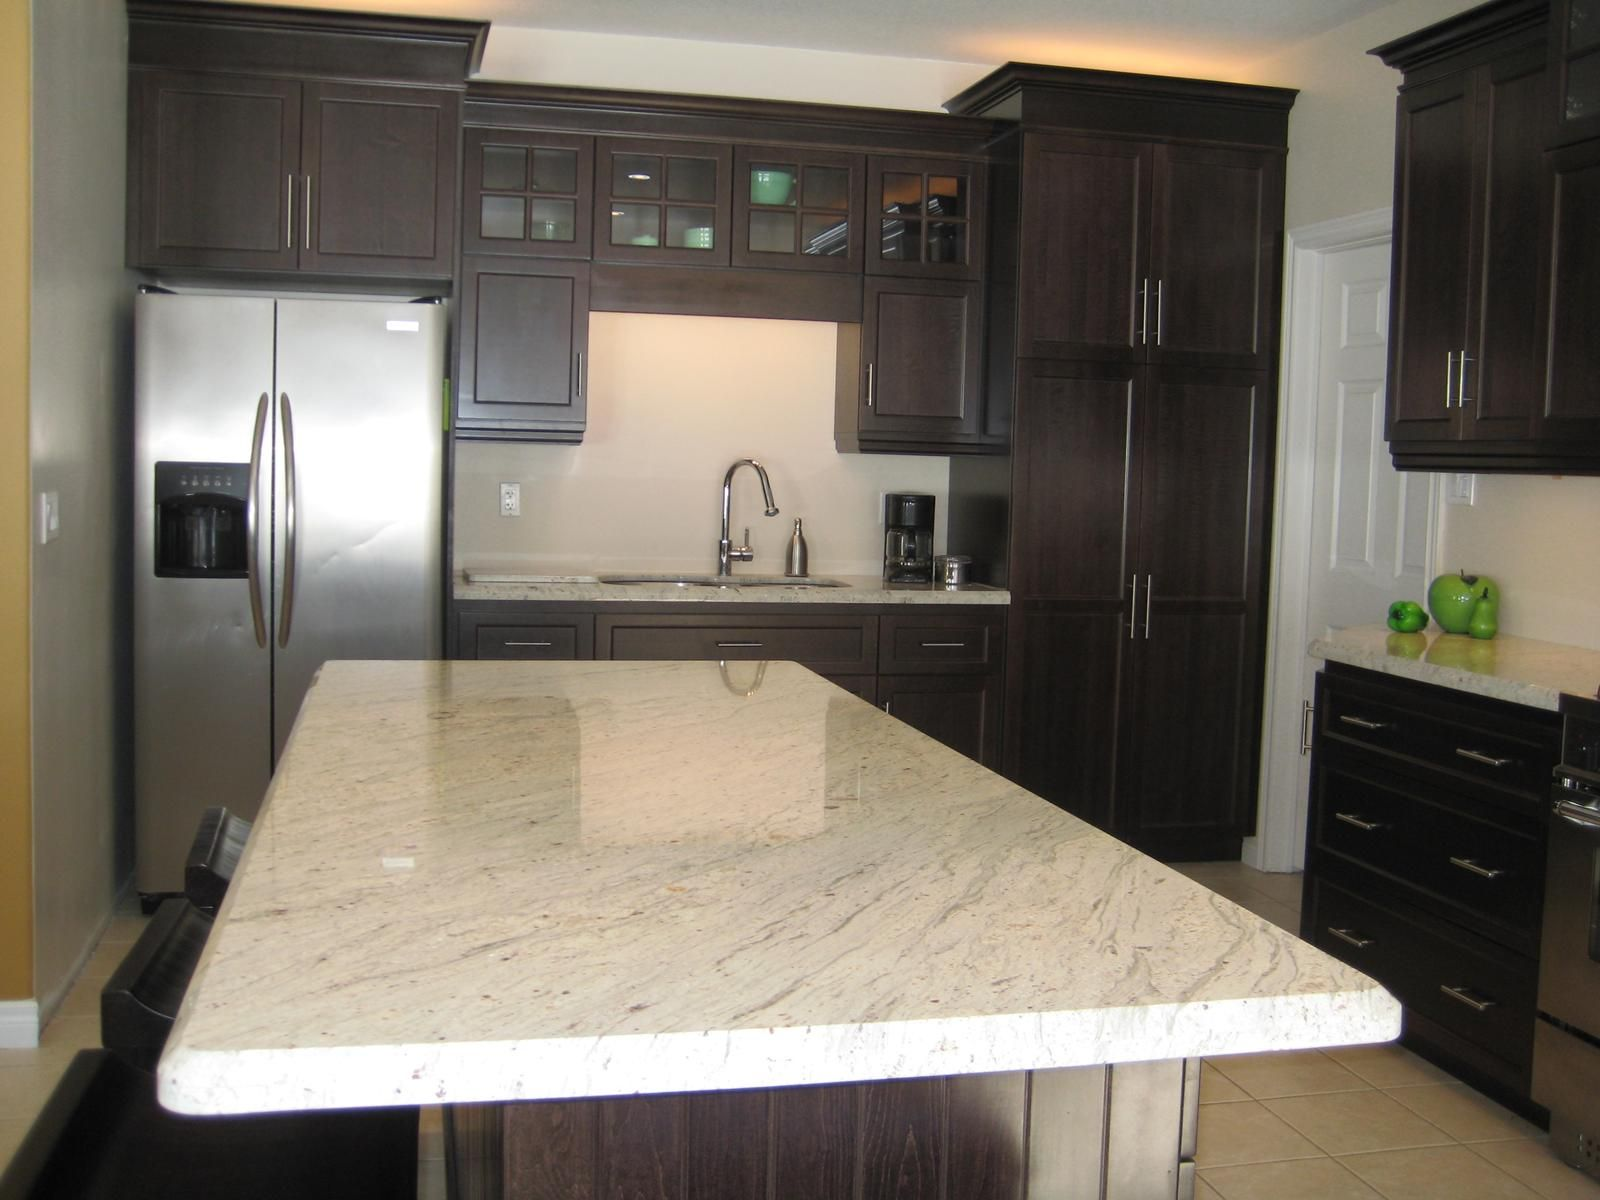 Granite Slab For Kitchen River White Granite Countertops Graniteimpressionsnet Living